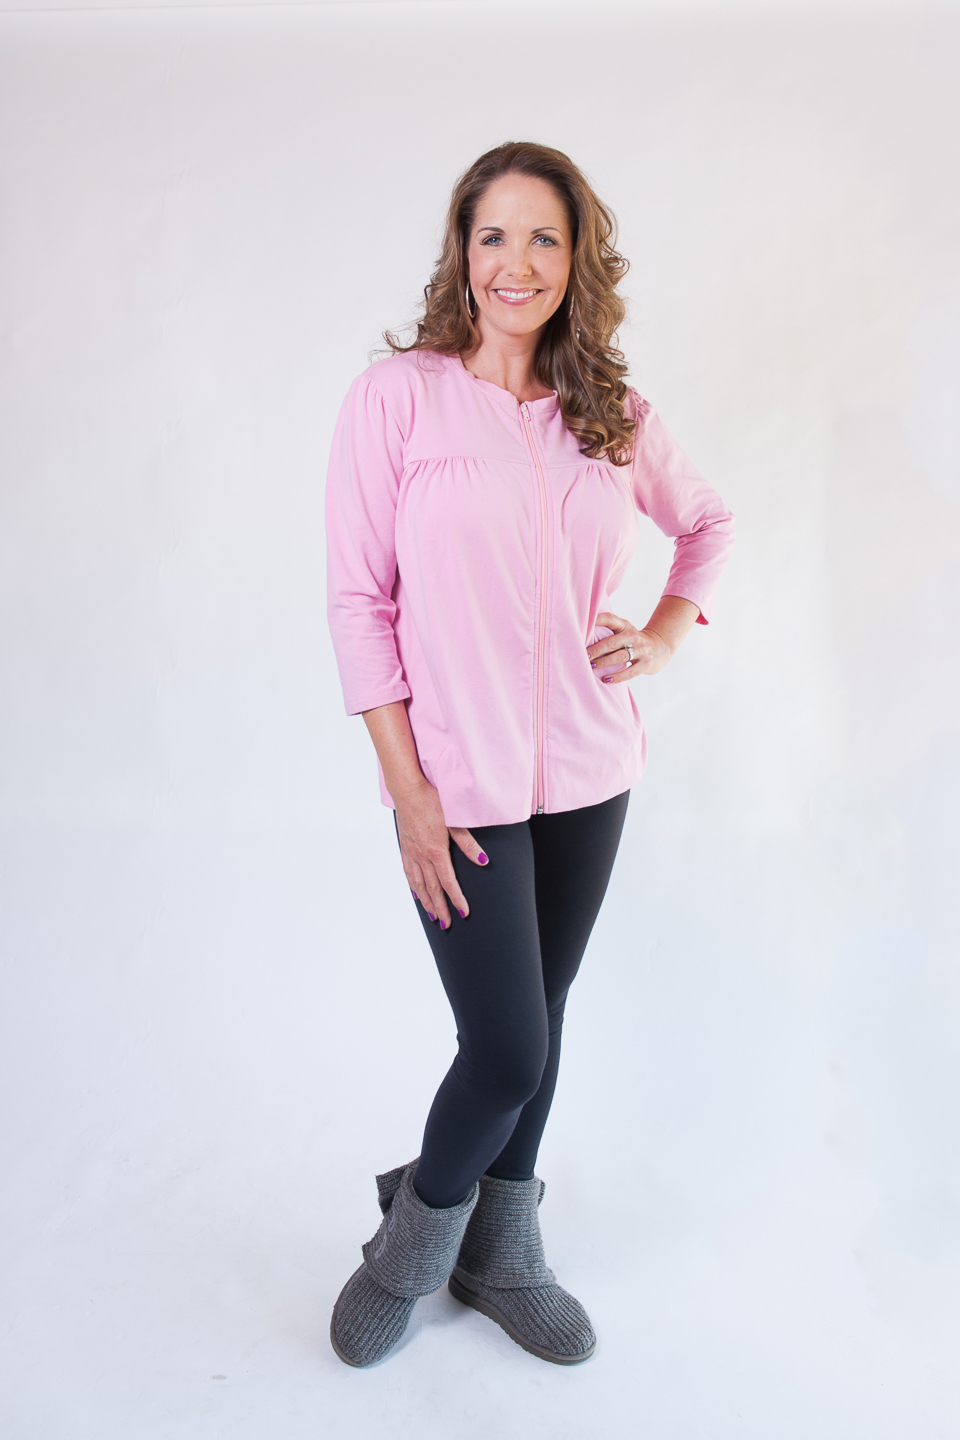 The POT Top - Long Sleeve Zip-Front Top in PINK $69.95